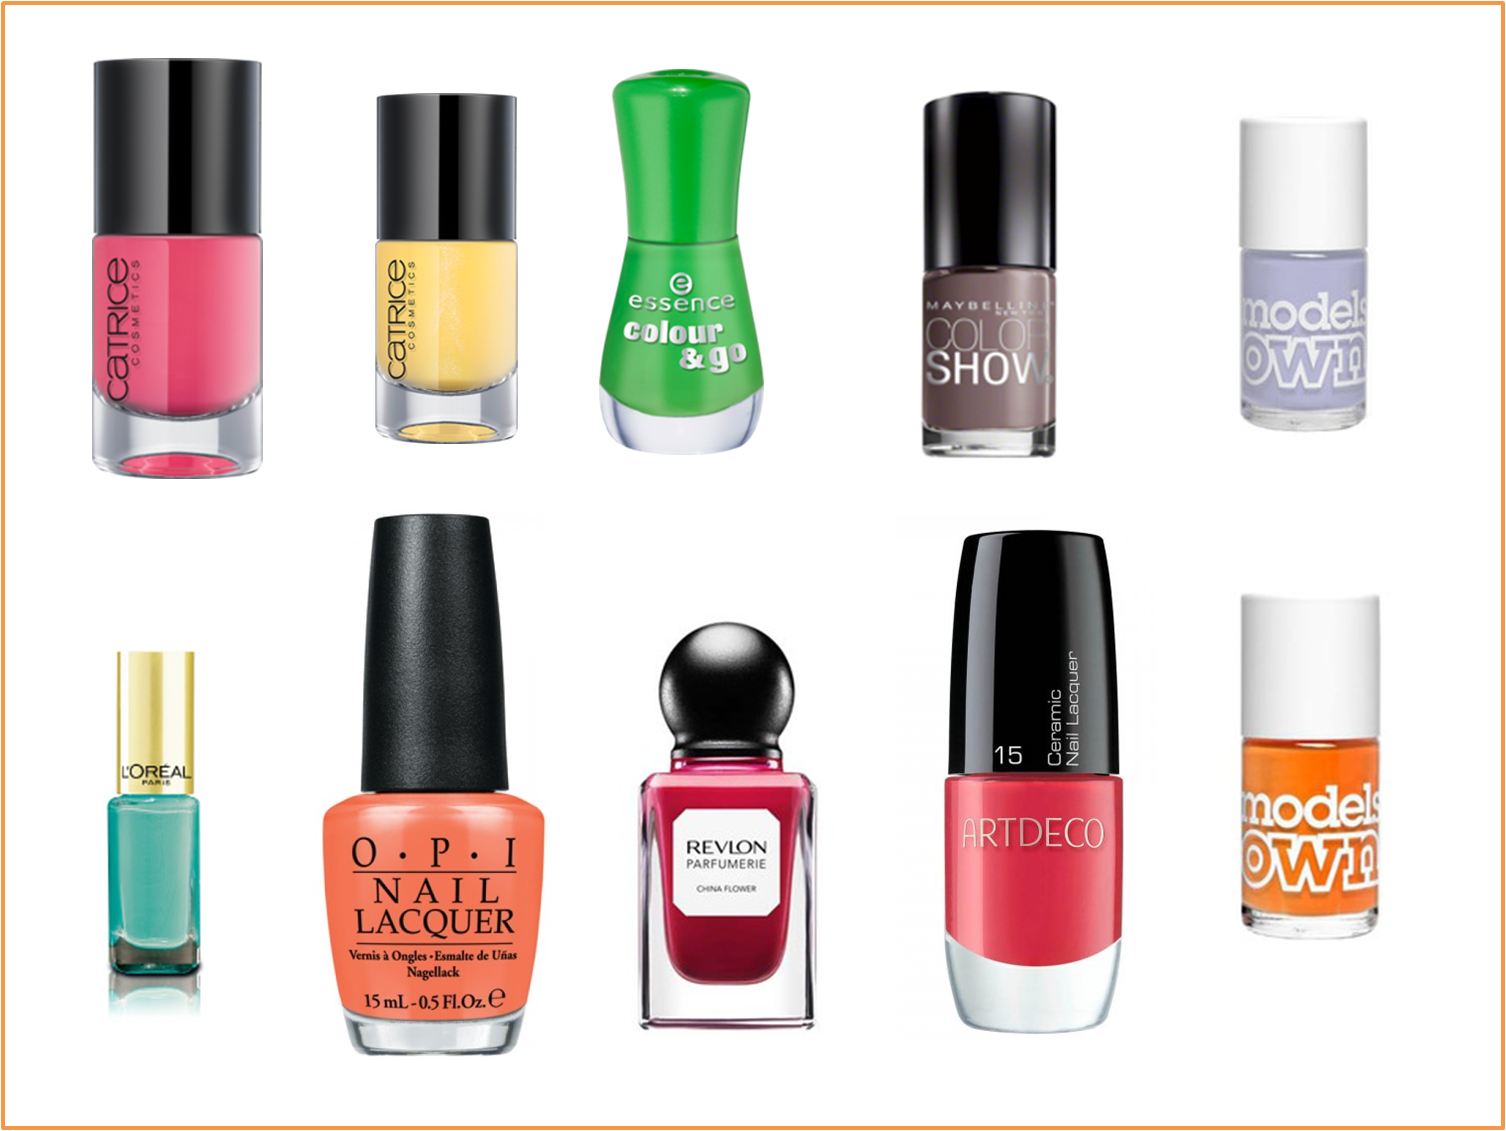 The Best Nail Polish Colors for Summer 2019 - Summer ...